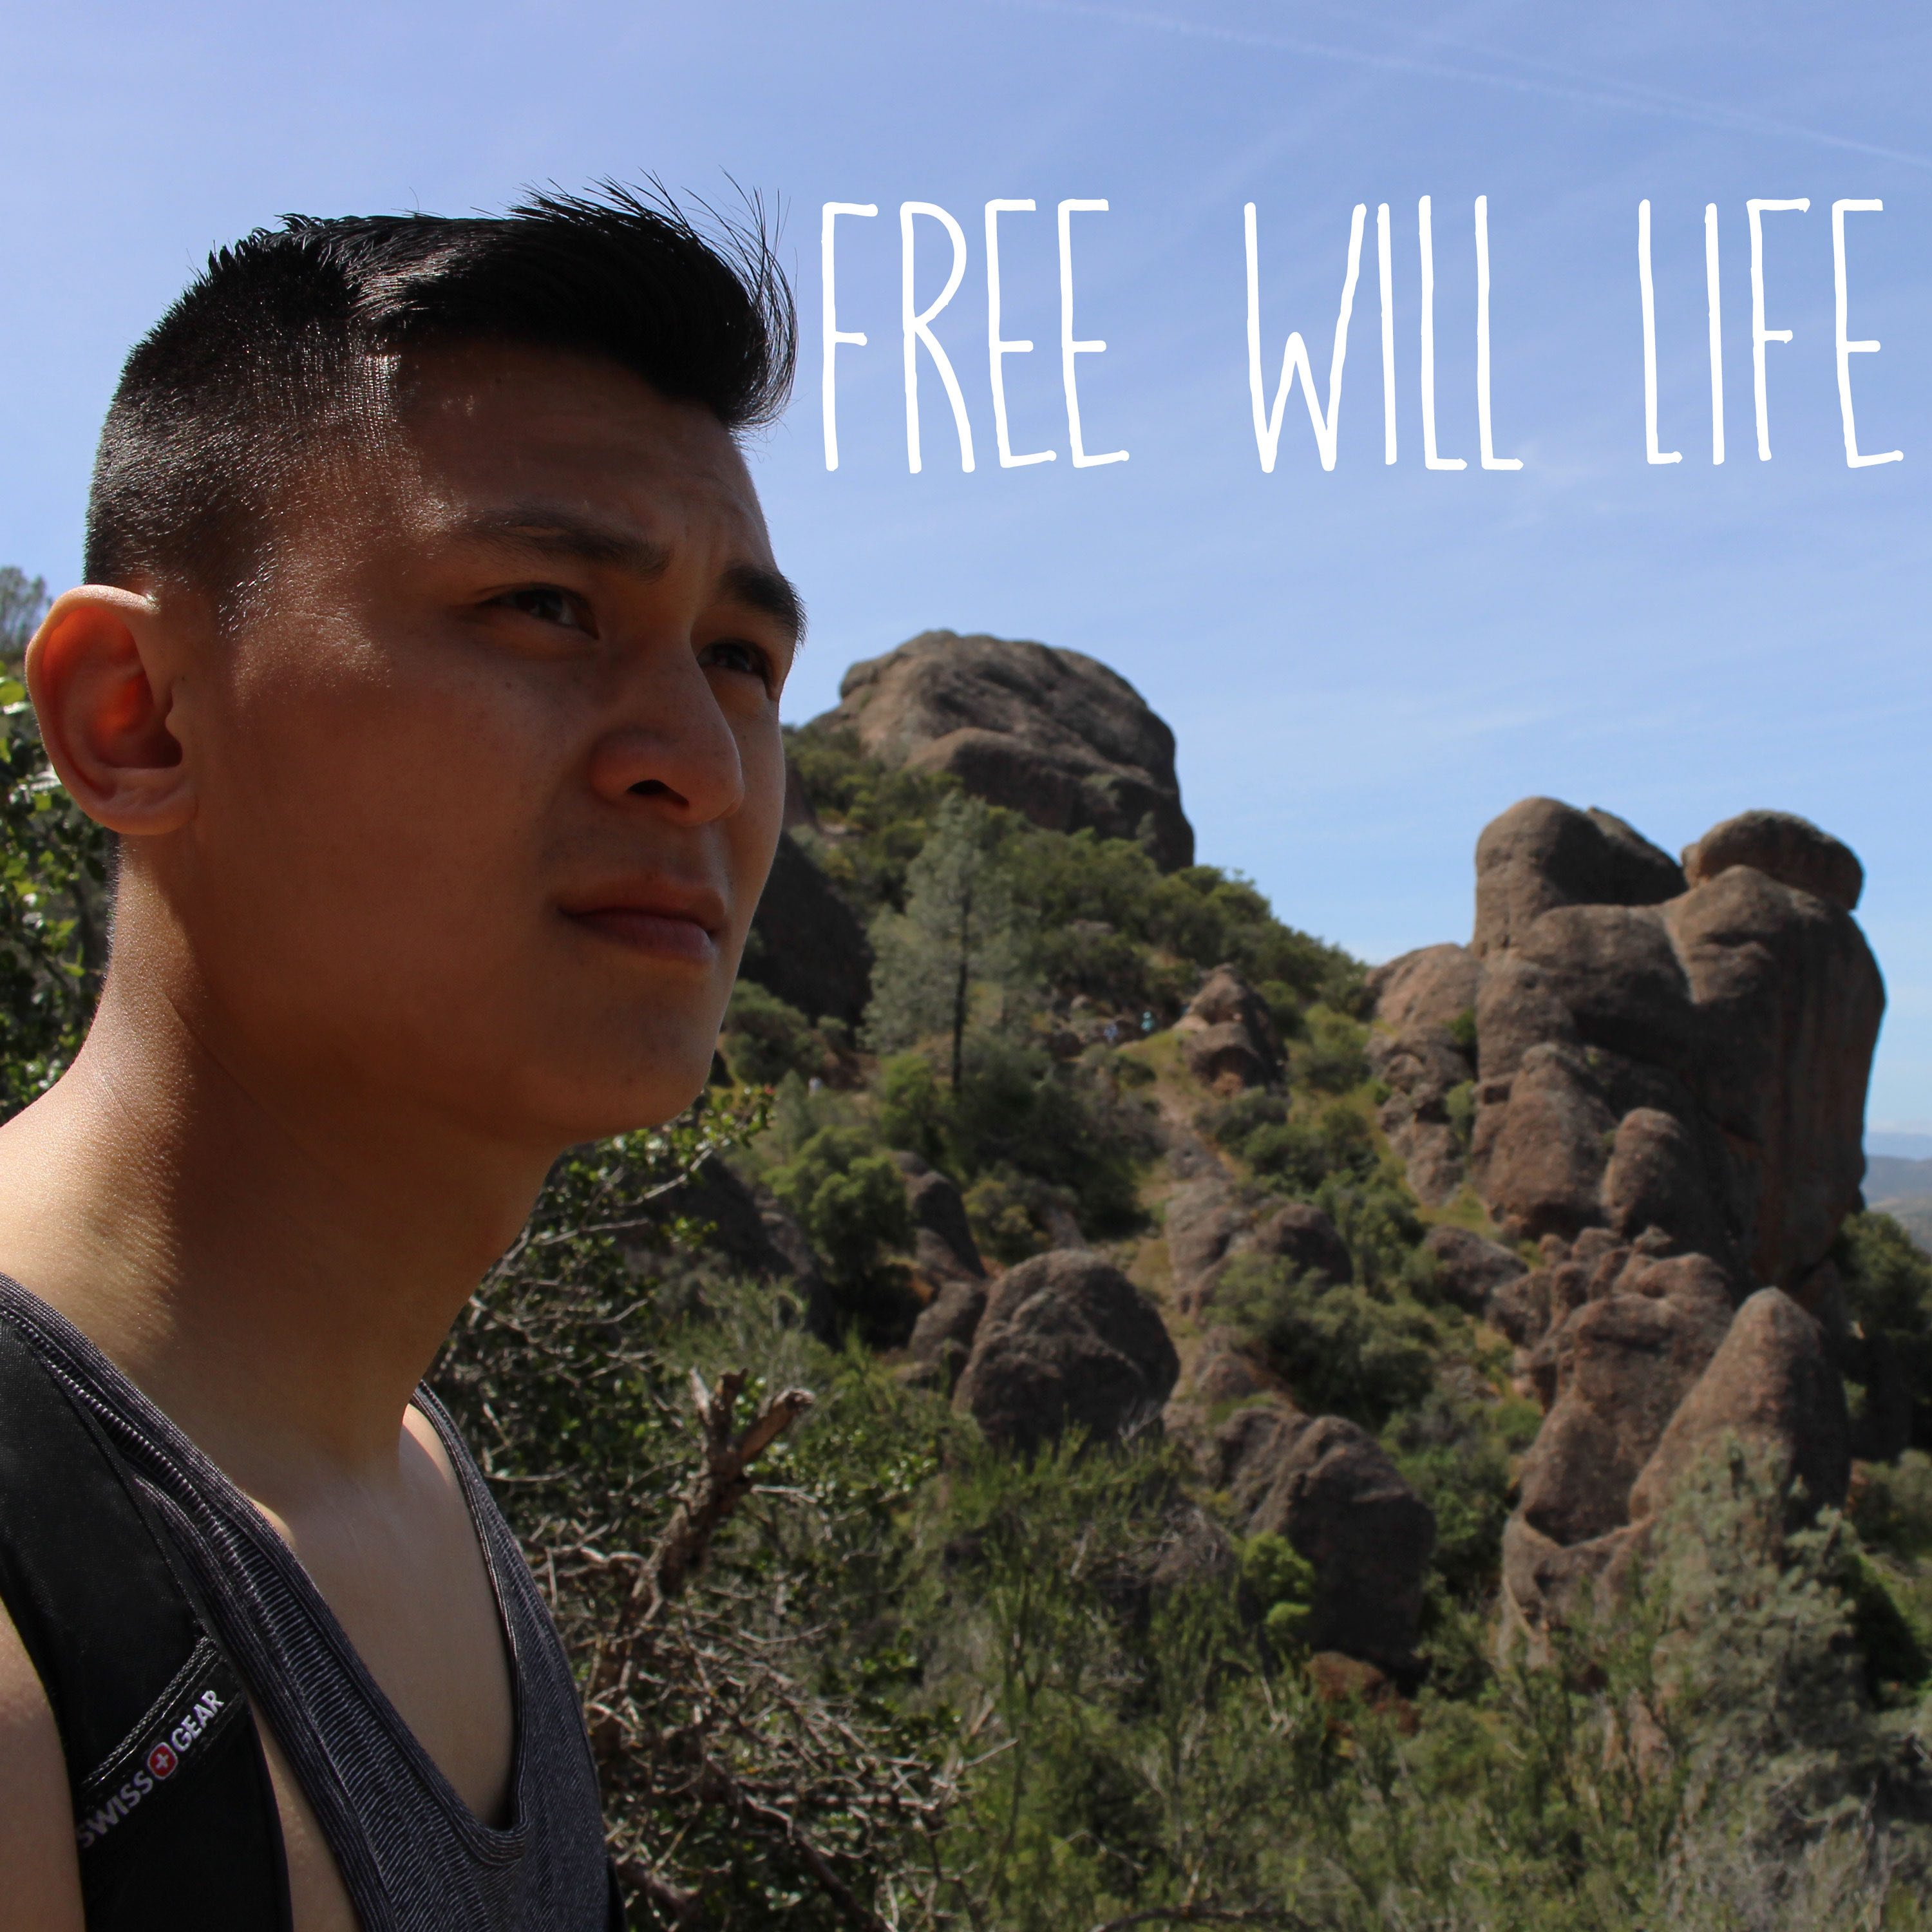 Check out my latest interview on the Free Will Life podcast!